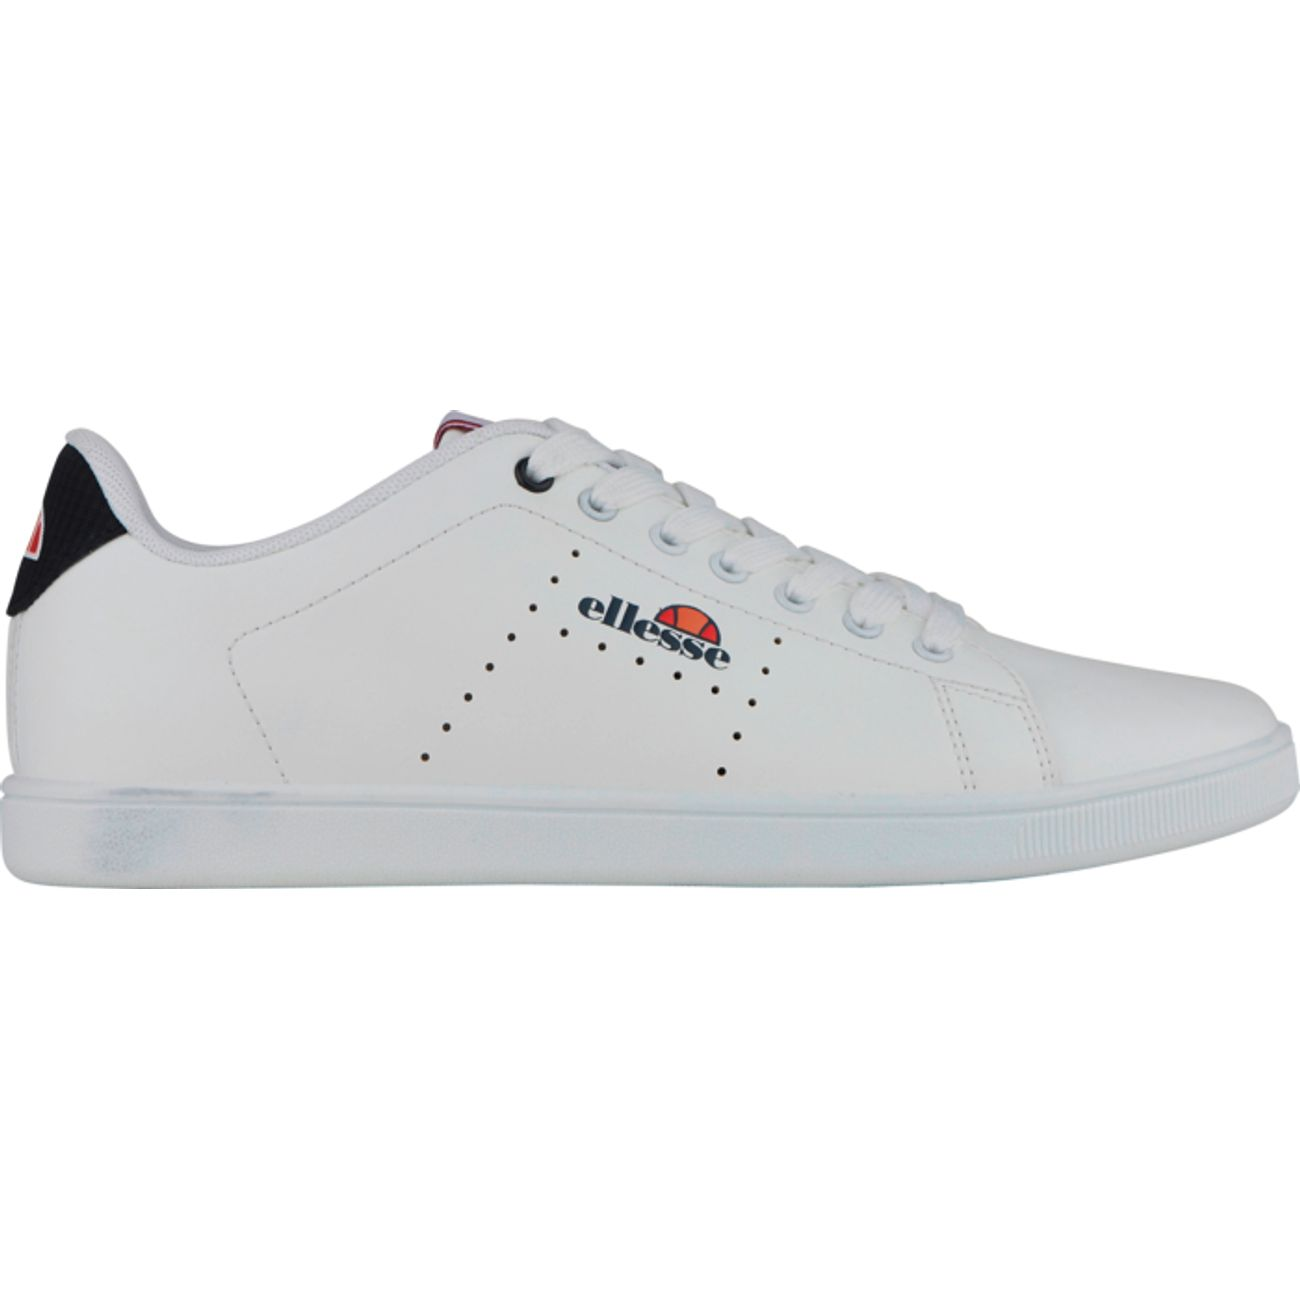 CHAUSSURES BASSES Loisirs homme ELLESSE MADRID